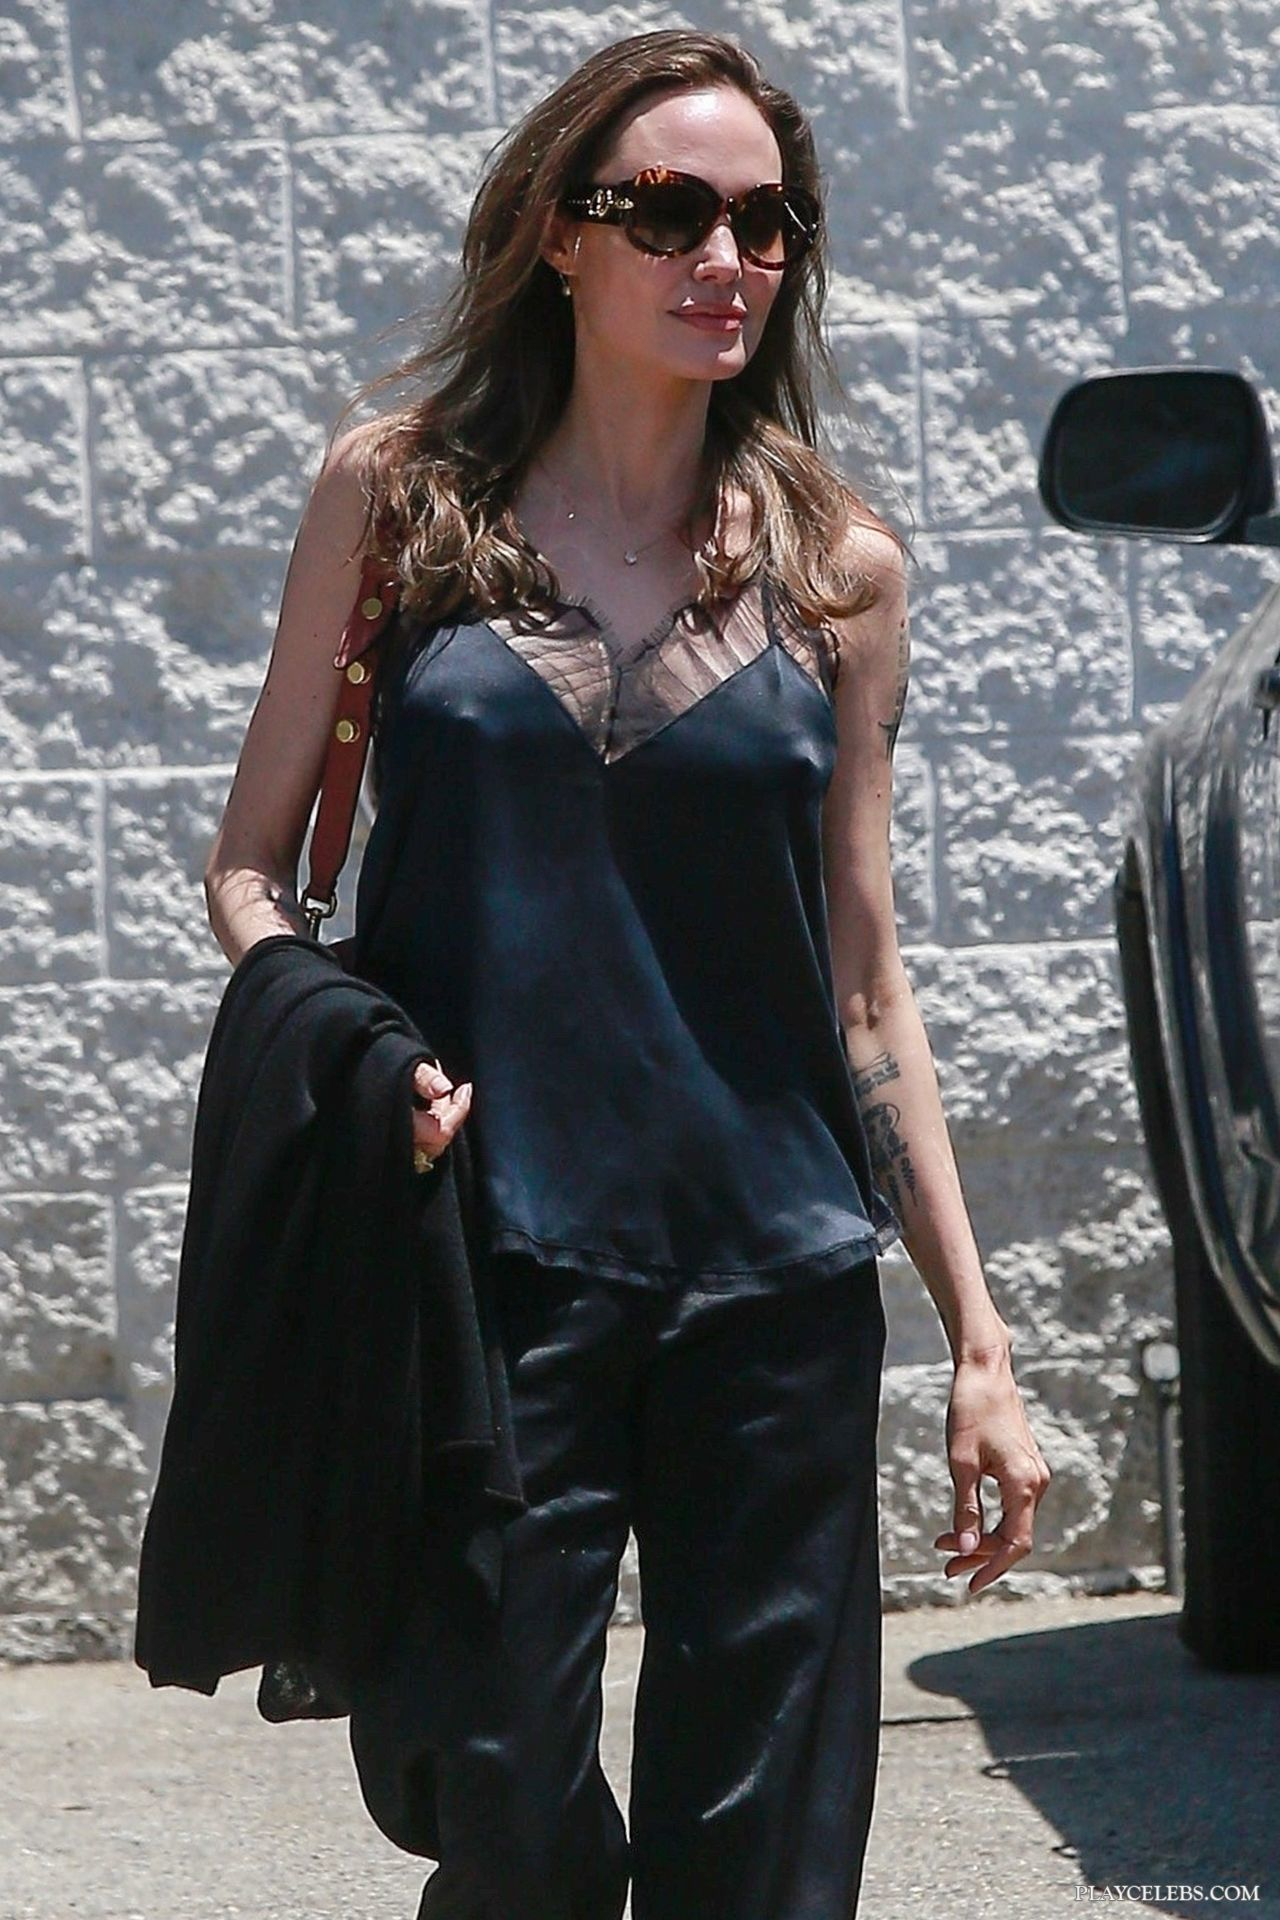 You are currently viewing Angelina Jolie Flashing Her Hard Nipples Outdoors